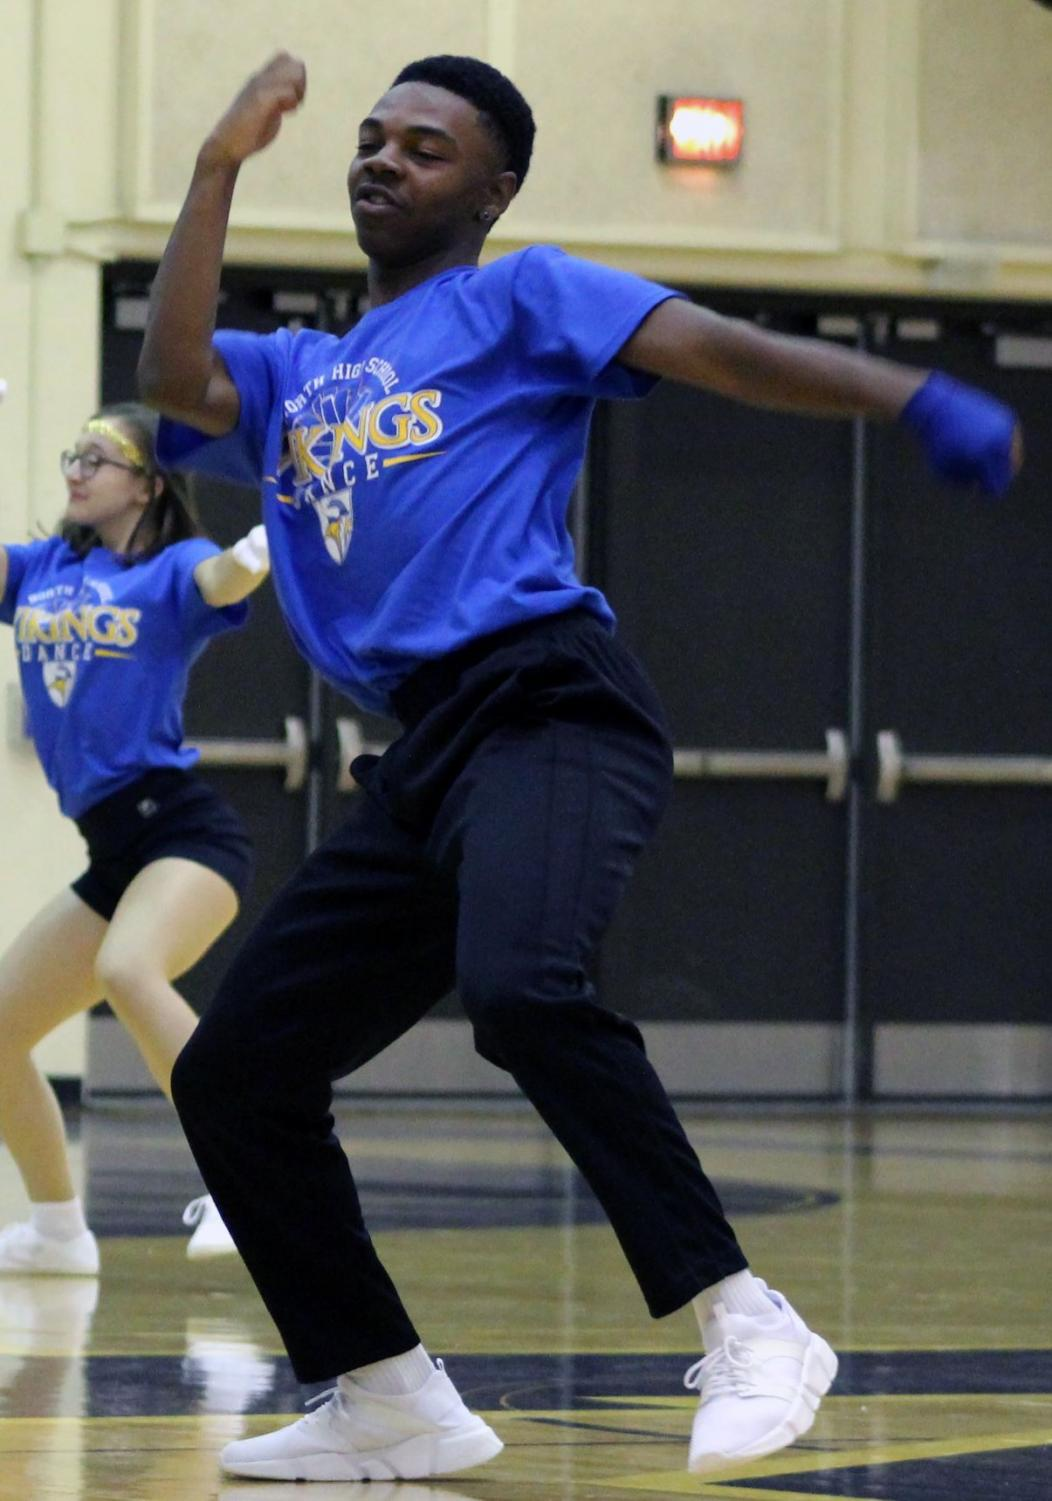 Danner, 10, dances next to other members of the Golden Vikings dance team. The dance team performed in all their glory at freshmen day during the opening pep-rally. Photo by Caitlin Pieters